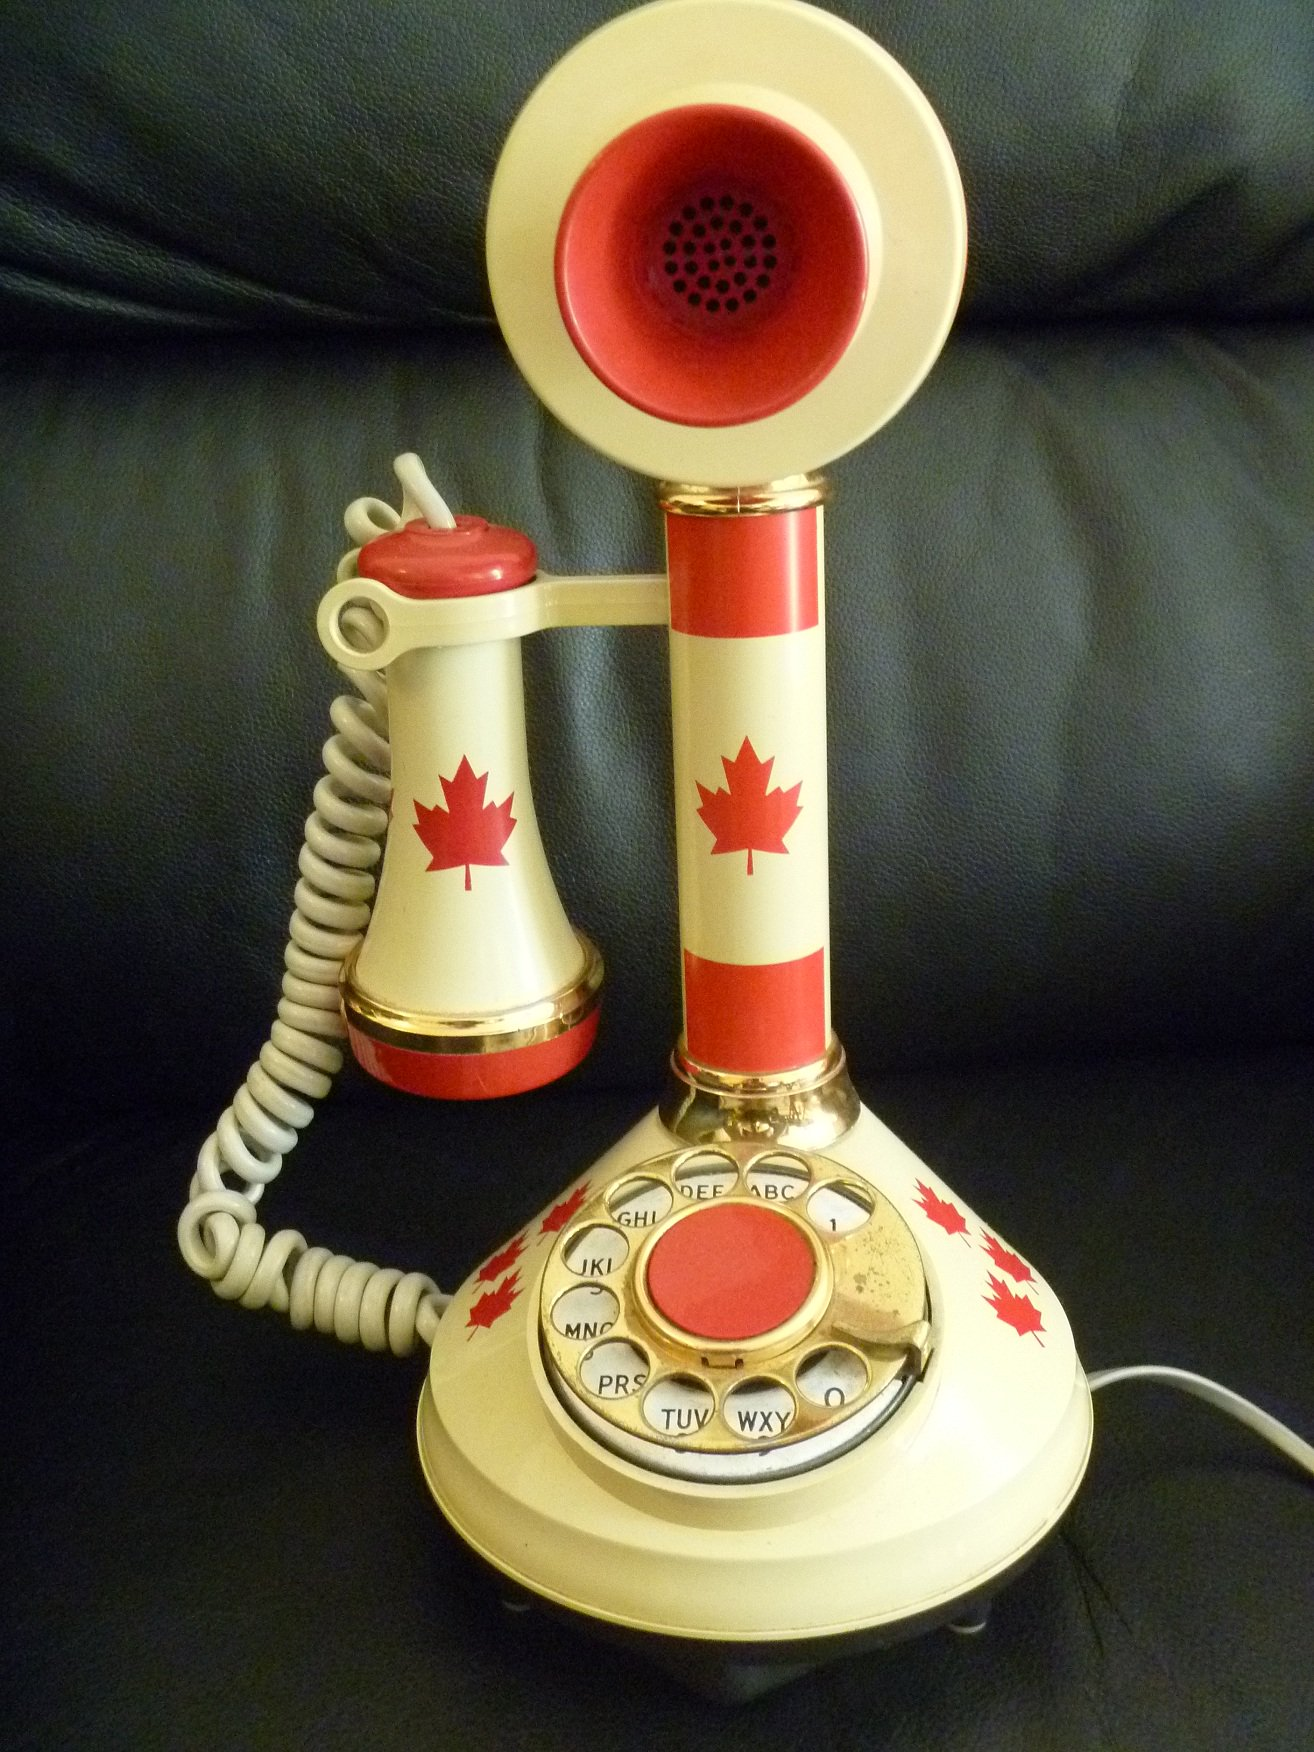 FOR SALE: Antique Candlestick Telephone